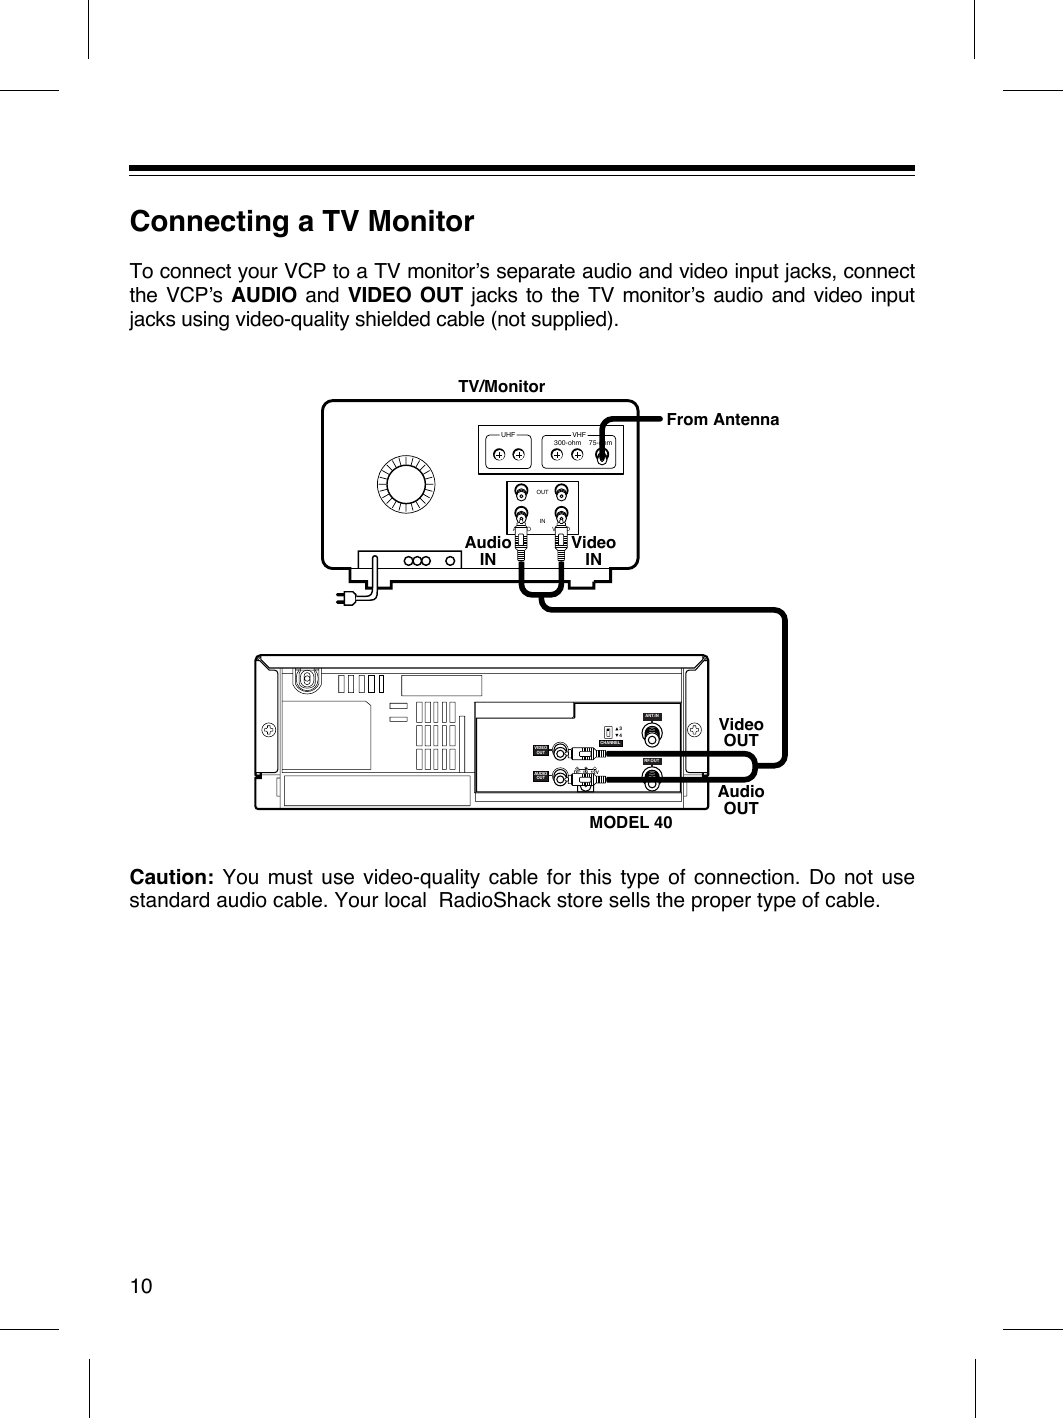 Radio Shack 1600430 Video Cassette Player User Manual Vcp354 Instruction Jack Wiring Diagram Connecting A Tv Monitorto Connect Your Vcp To Monitors Separate Audio And Input